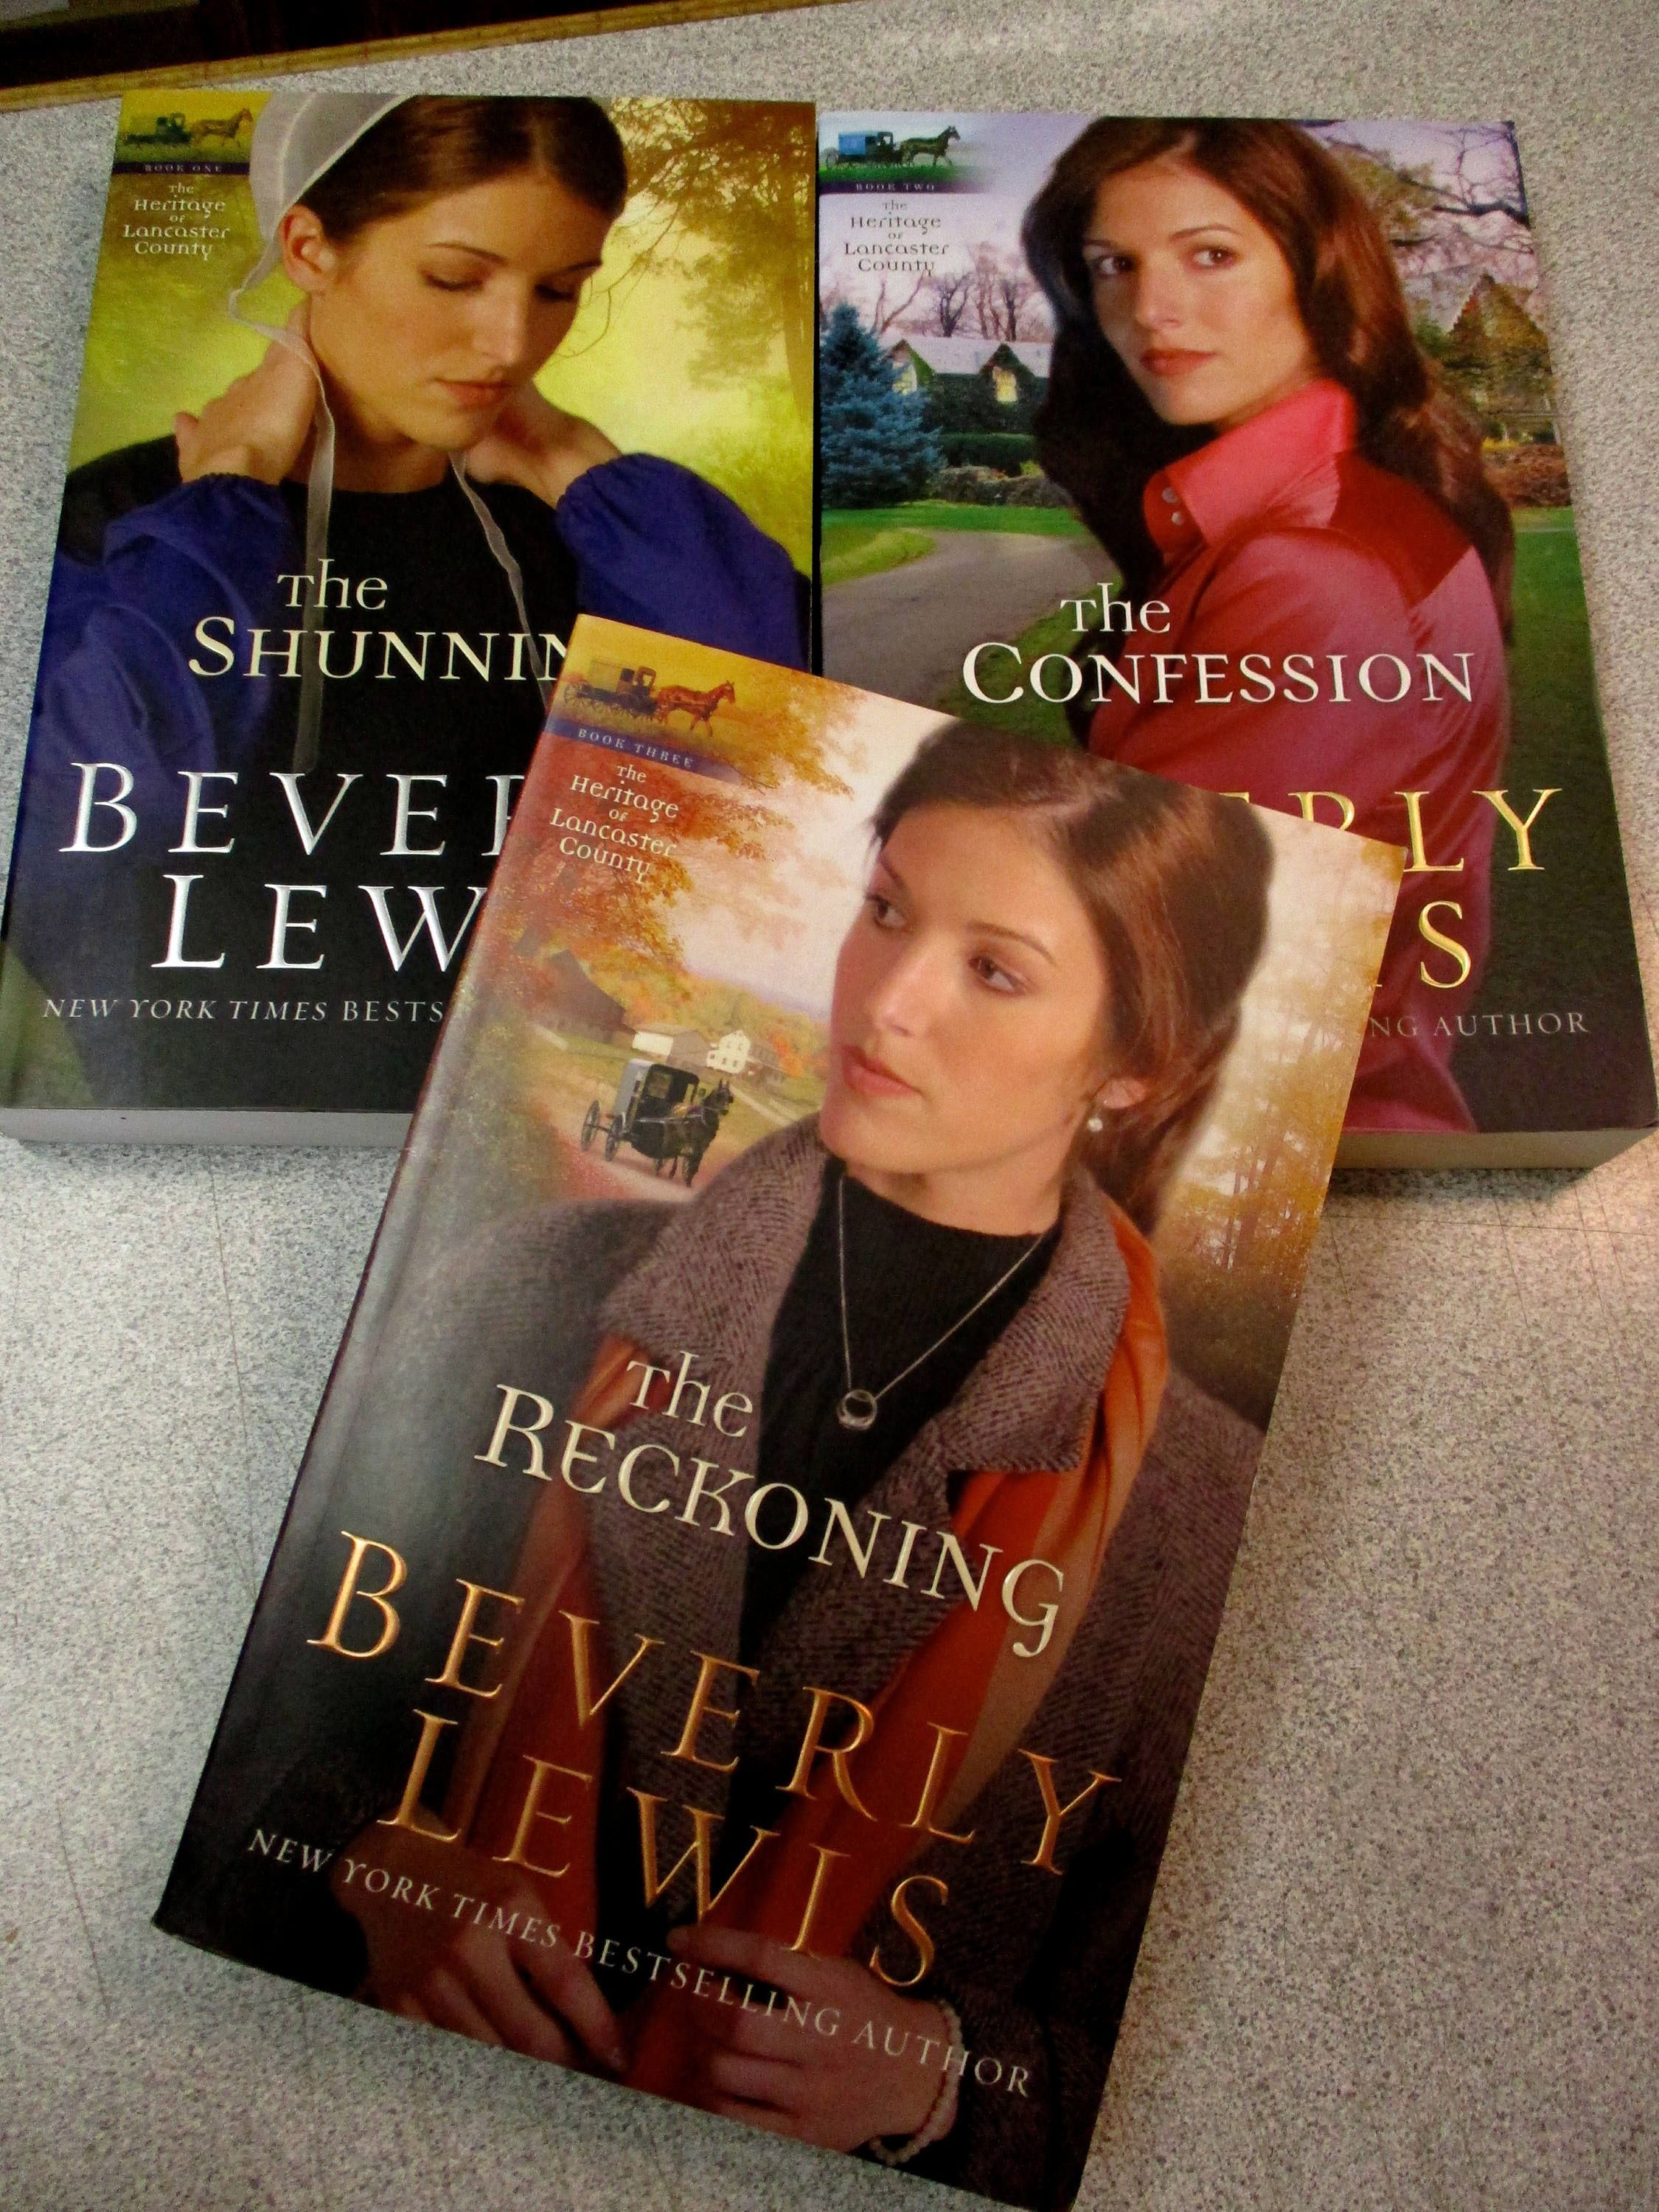 3 christian fiction beverly lewis heritage lancaster